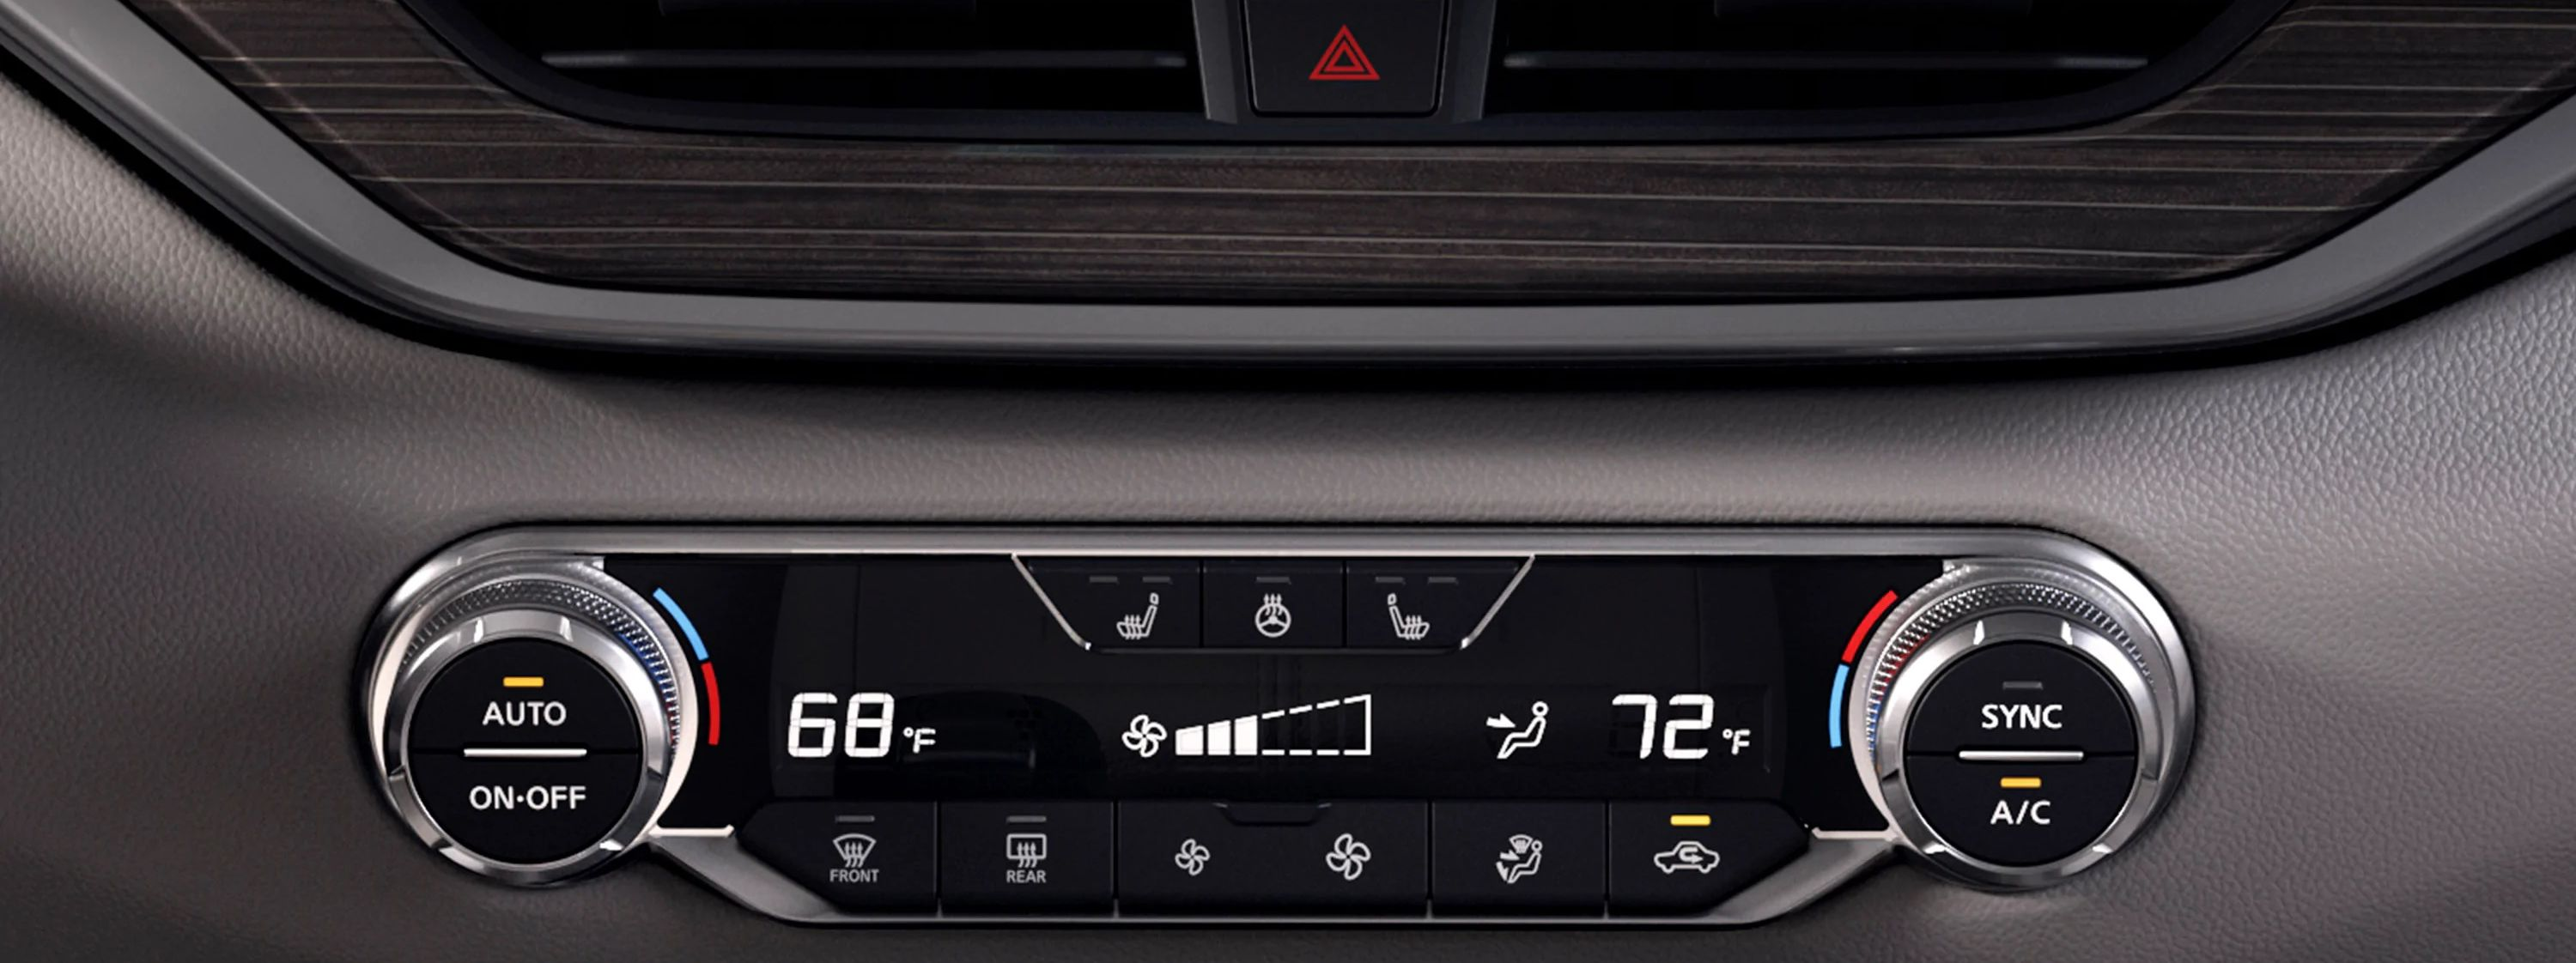 Advanced Climate Control in the 2019 Altima